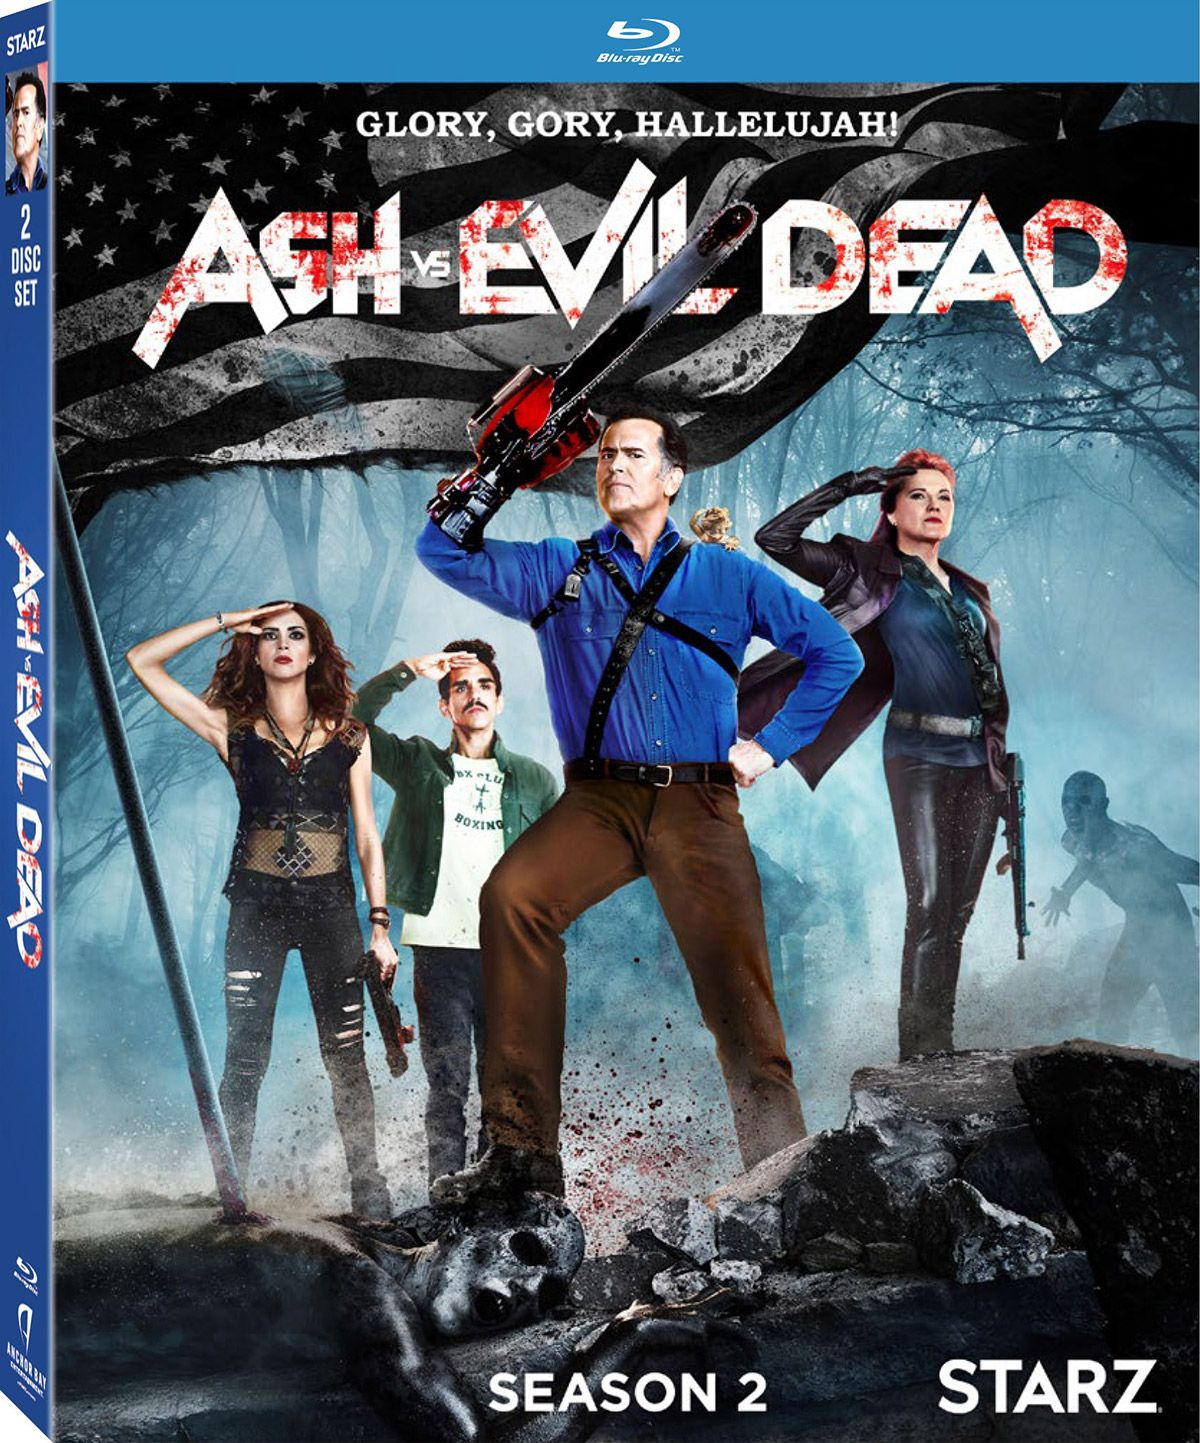 Ash Vs Evil Dead The Complete Second Season Blu Ray Review Evil Dead Series Dvd Seasons